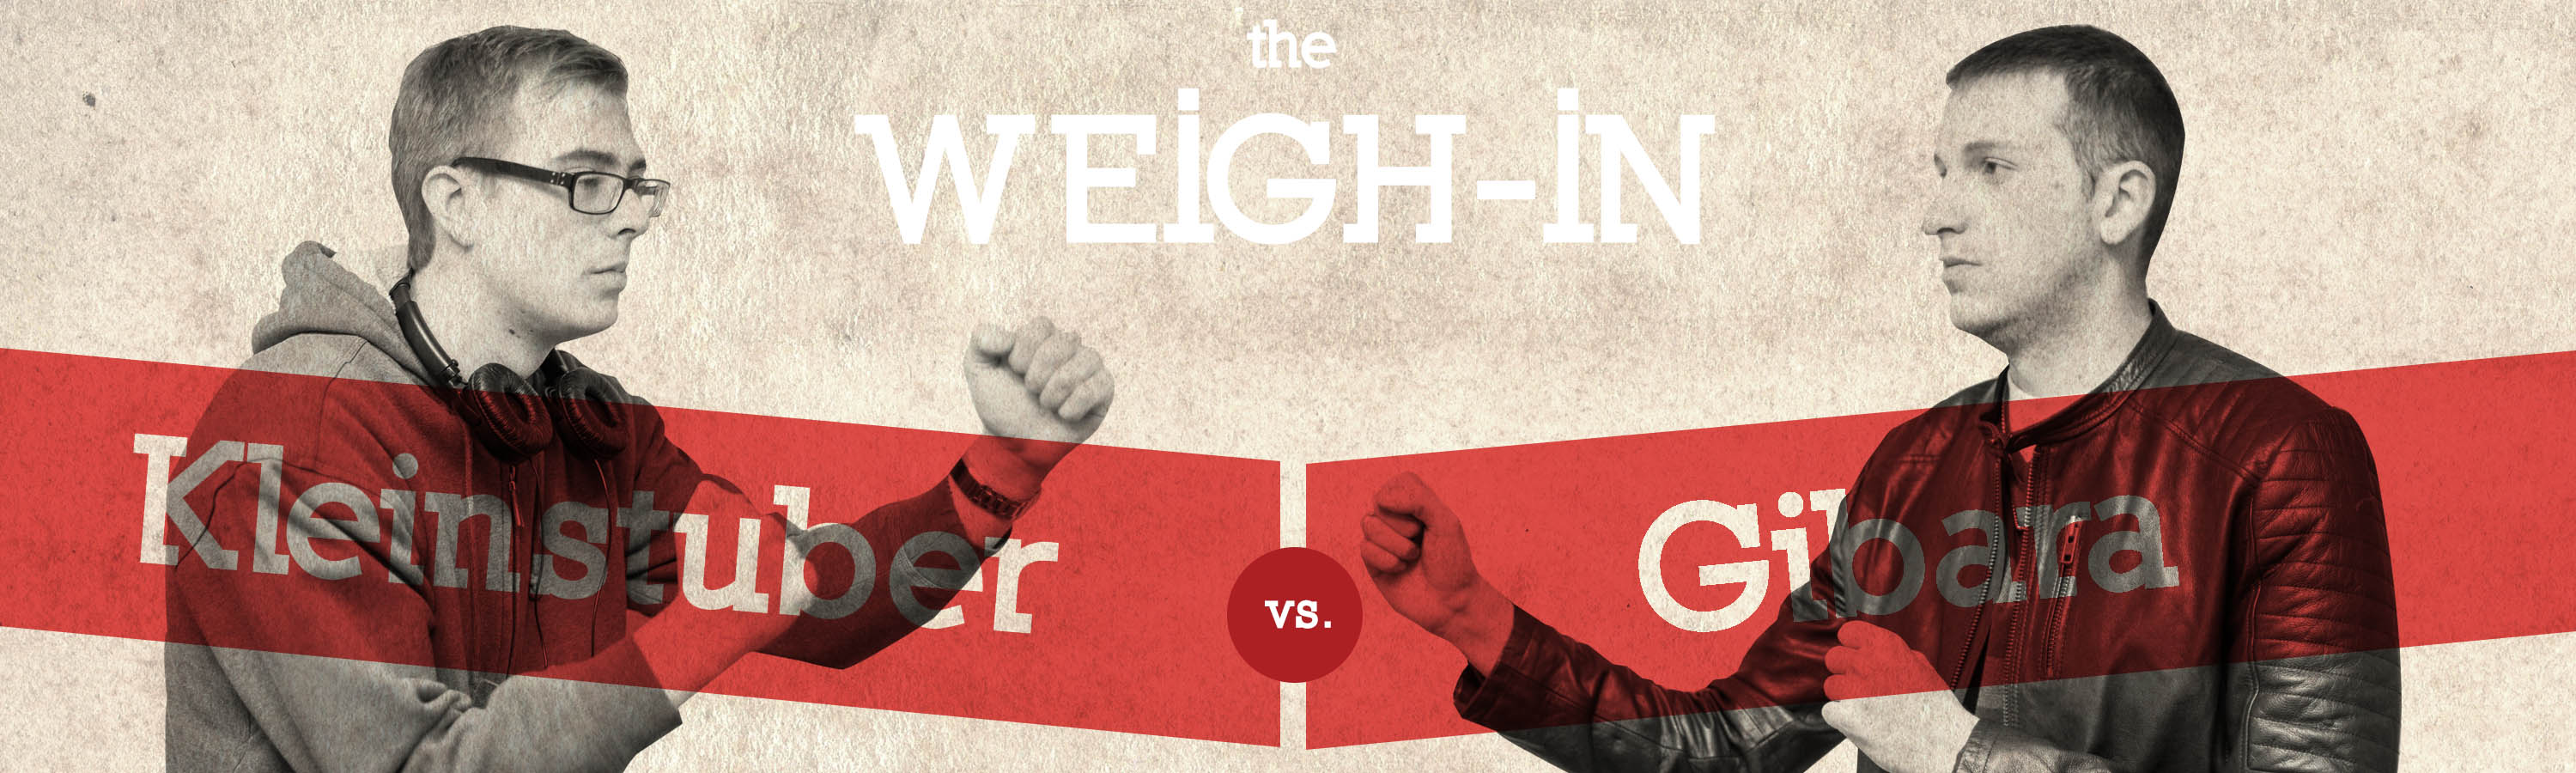 The weigh-in: Rob Ford